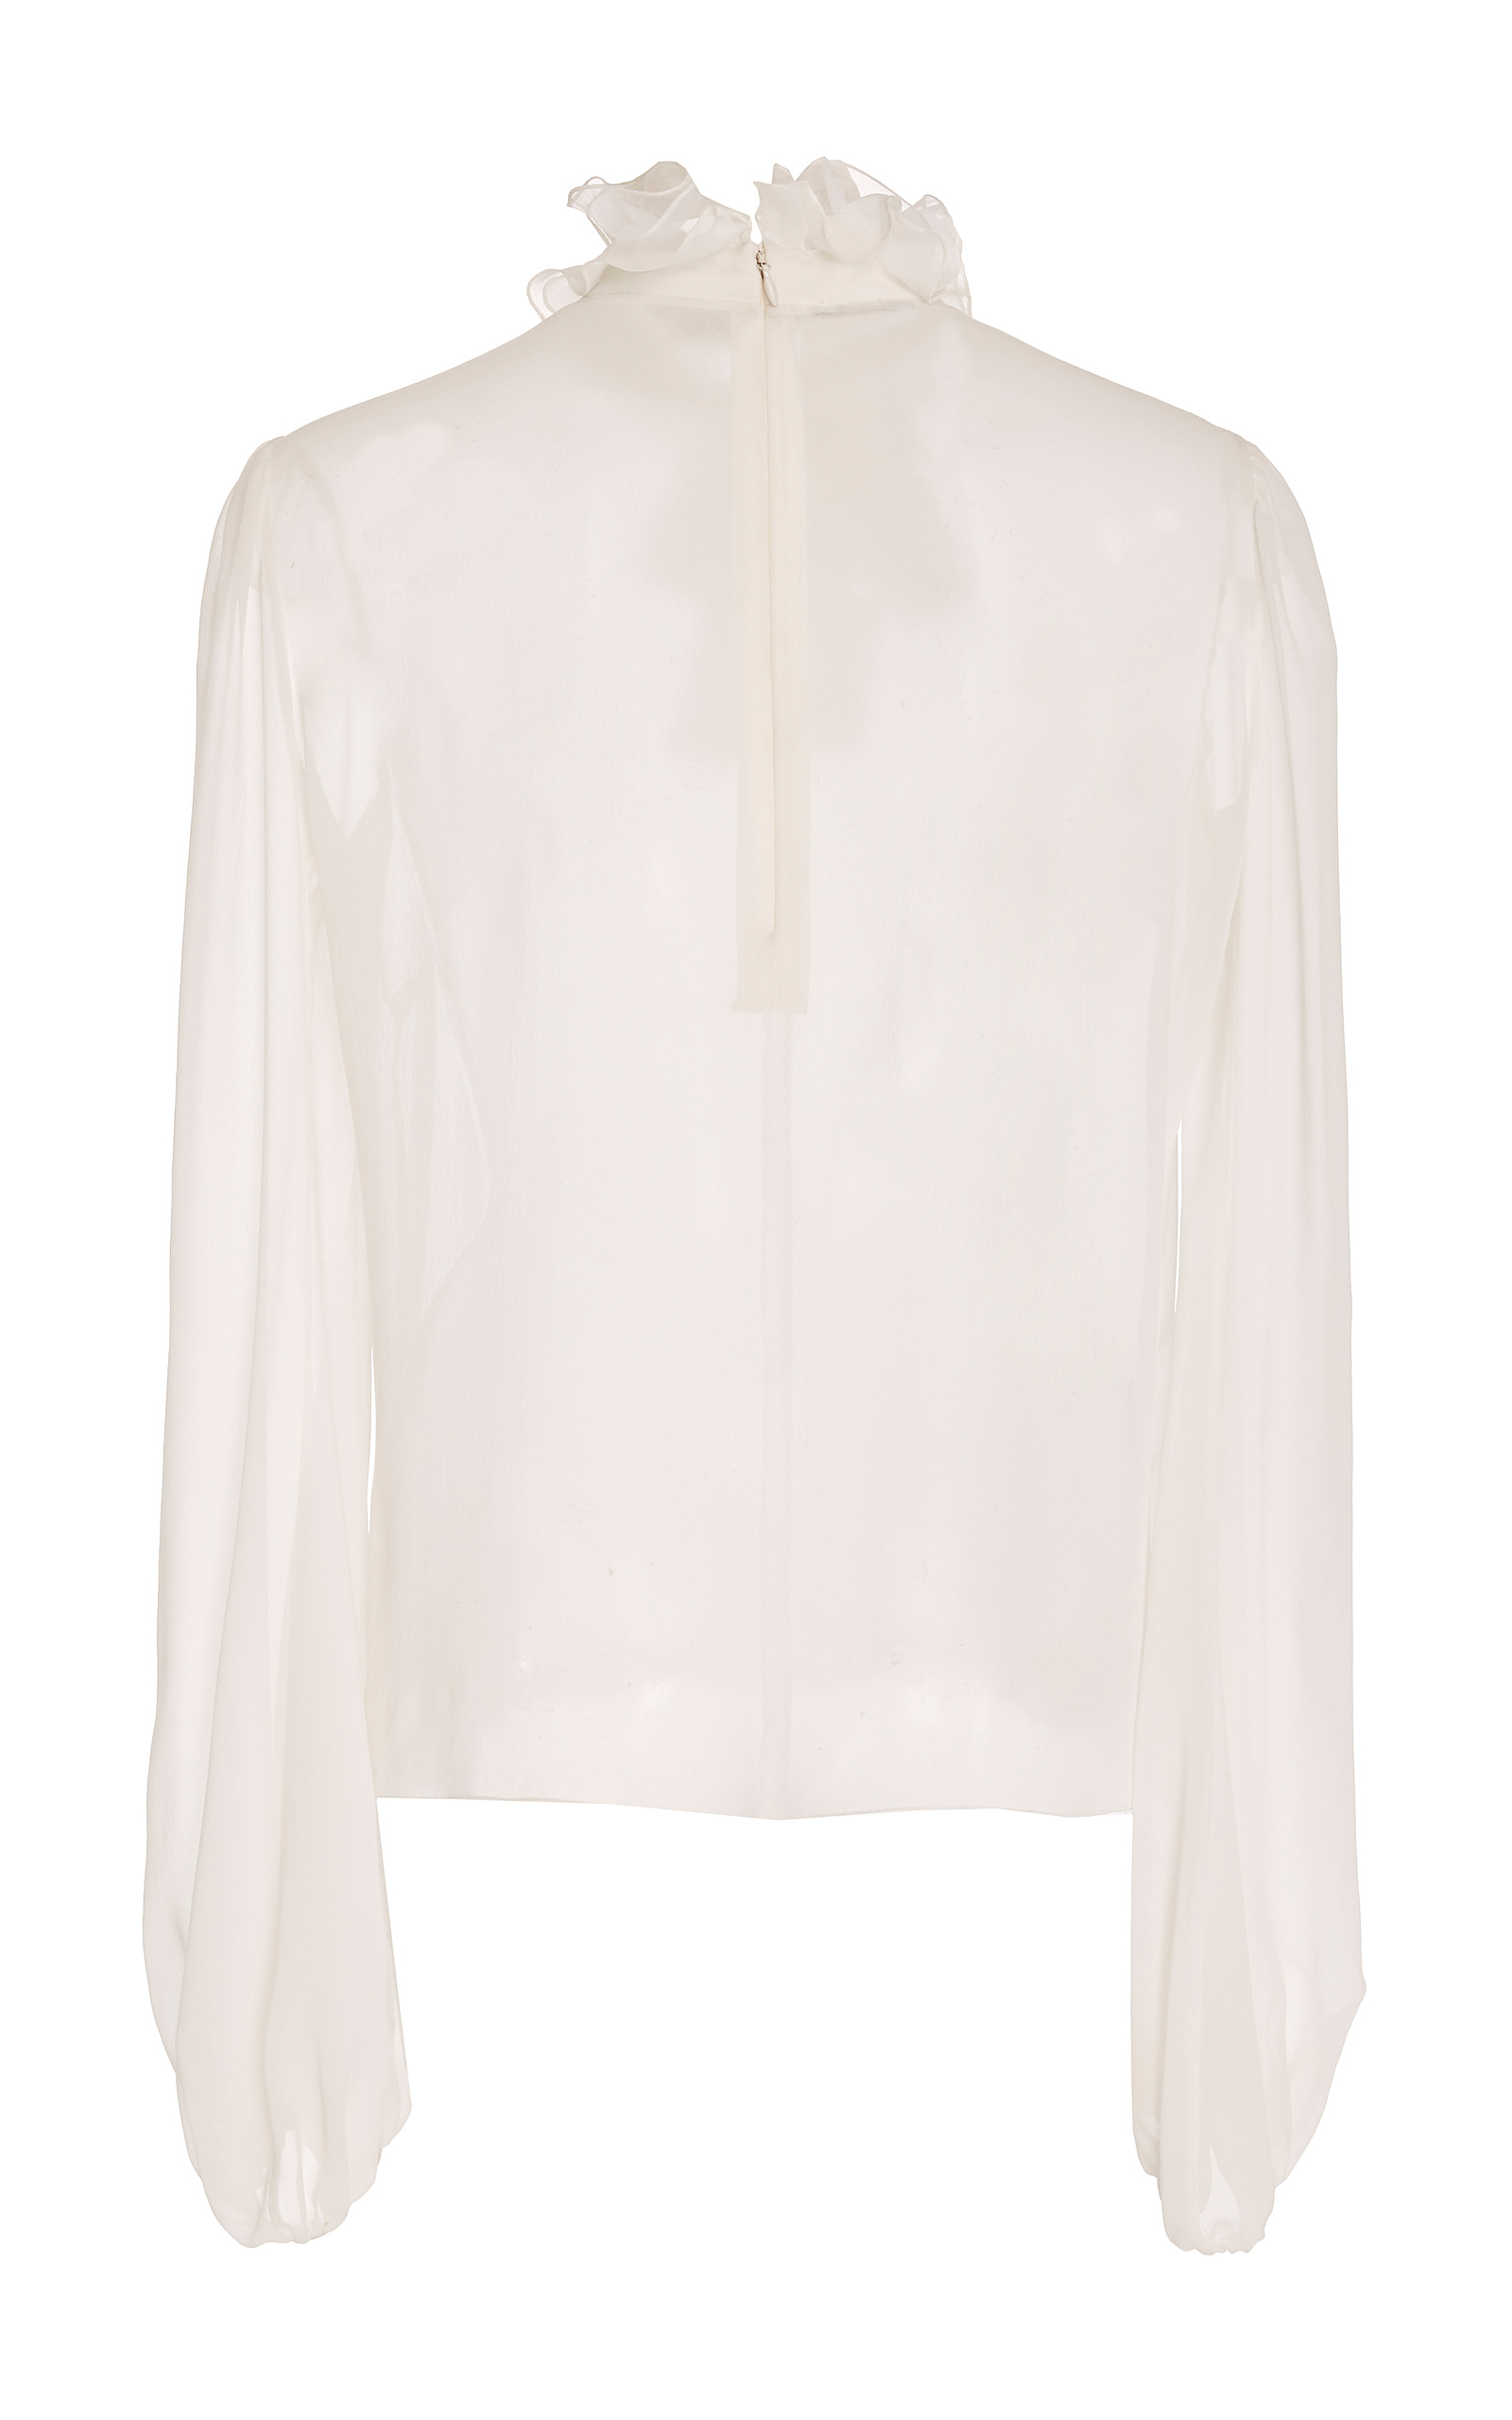 Bell Sleeve Cotton Blouse Giambattista Valli Outlet Recommend wrGozG